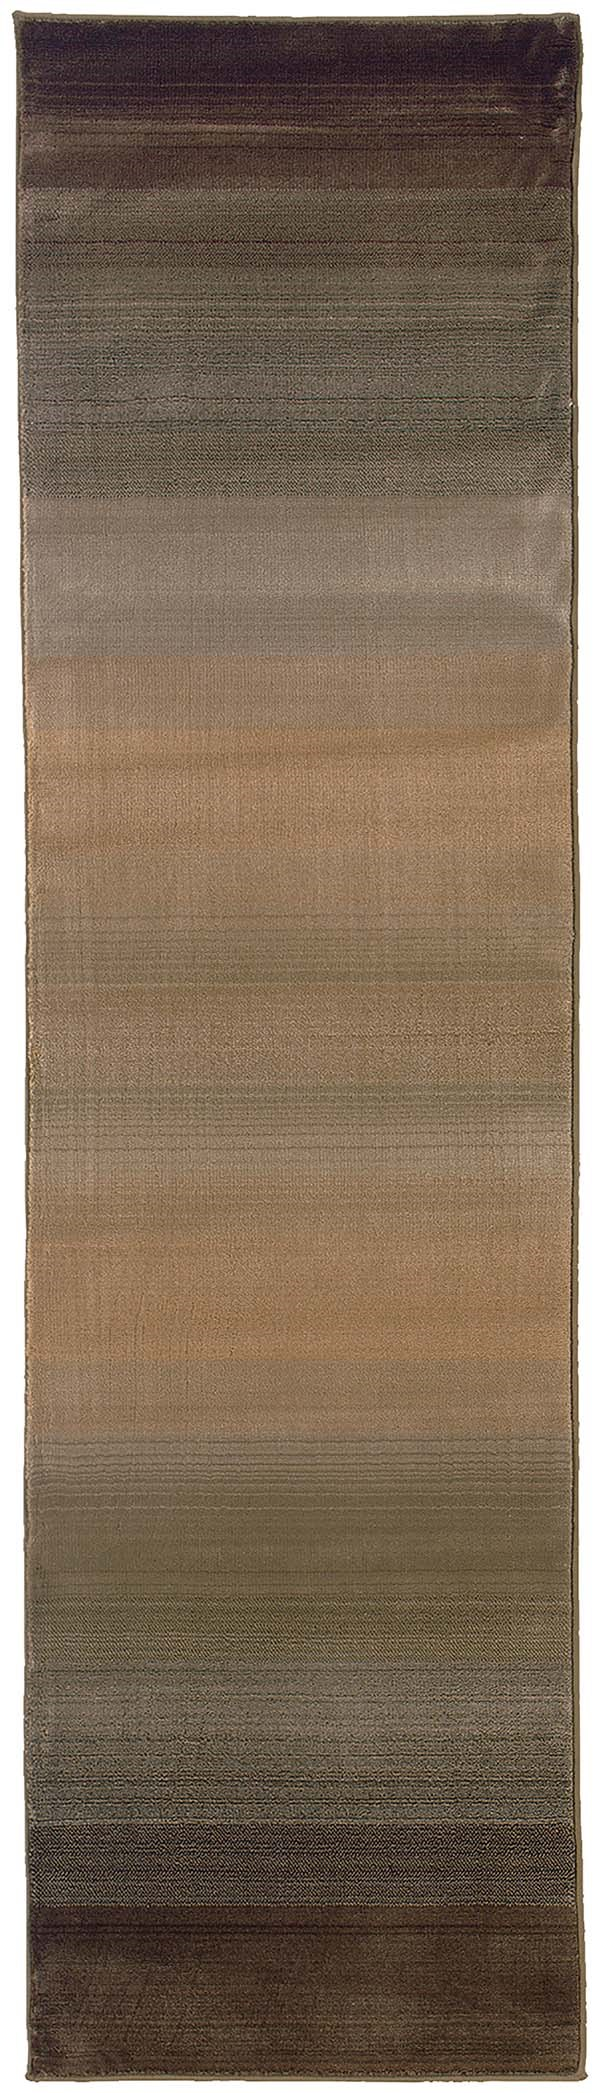 Brown, Beige   Transitional Area Rug